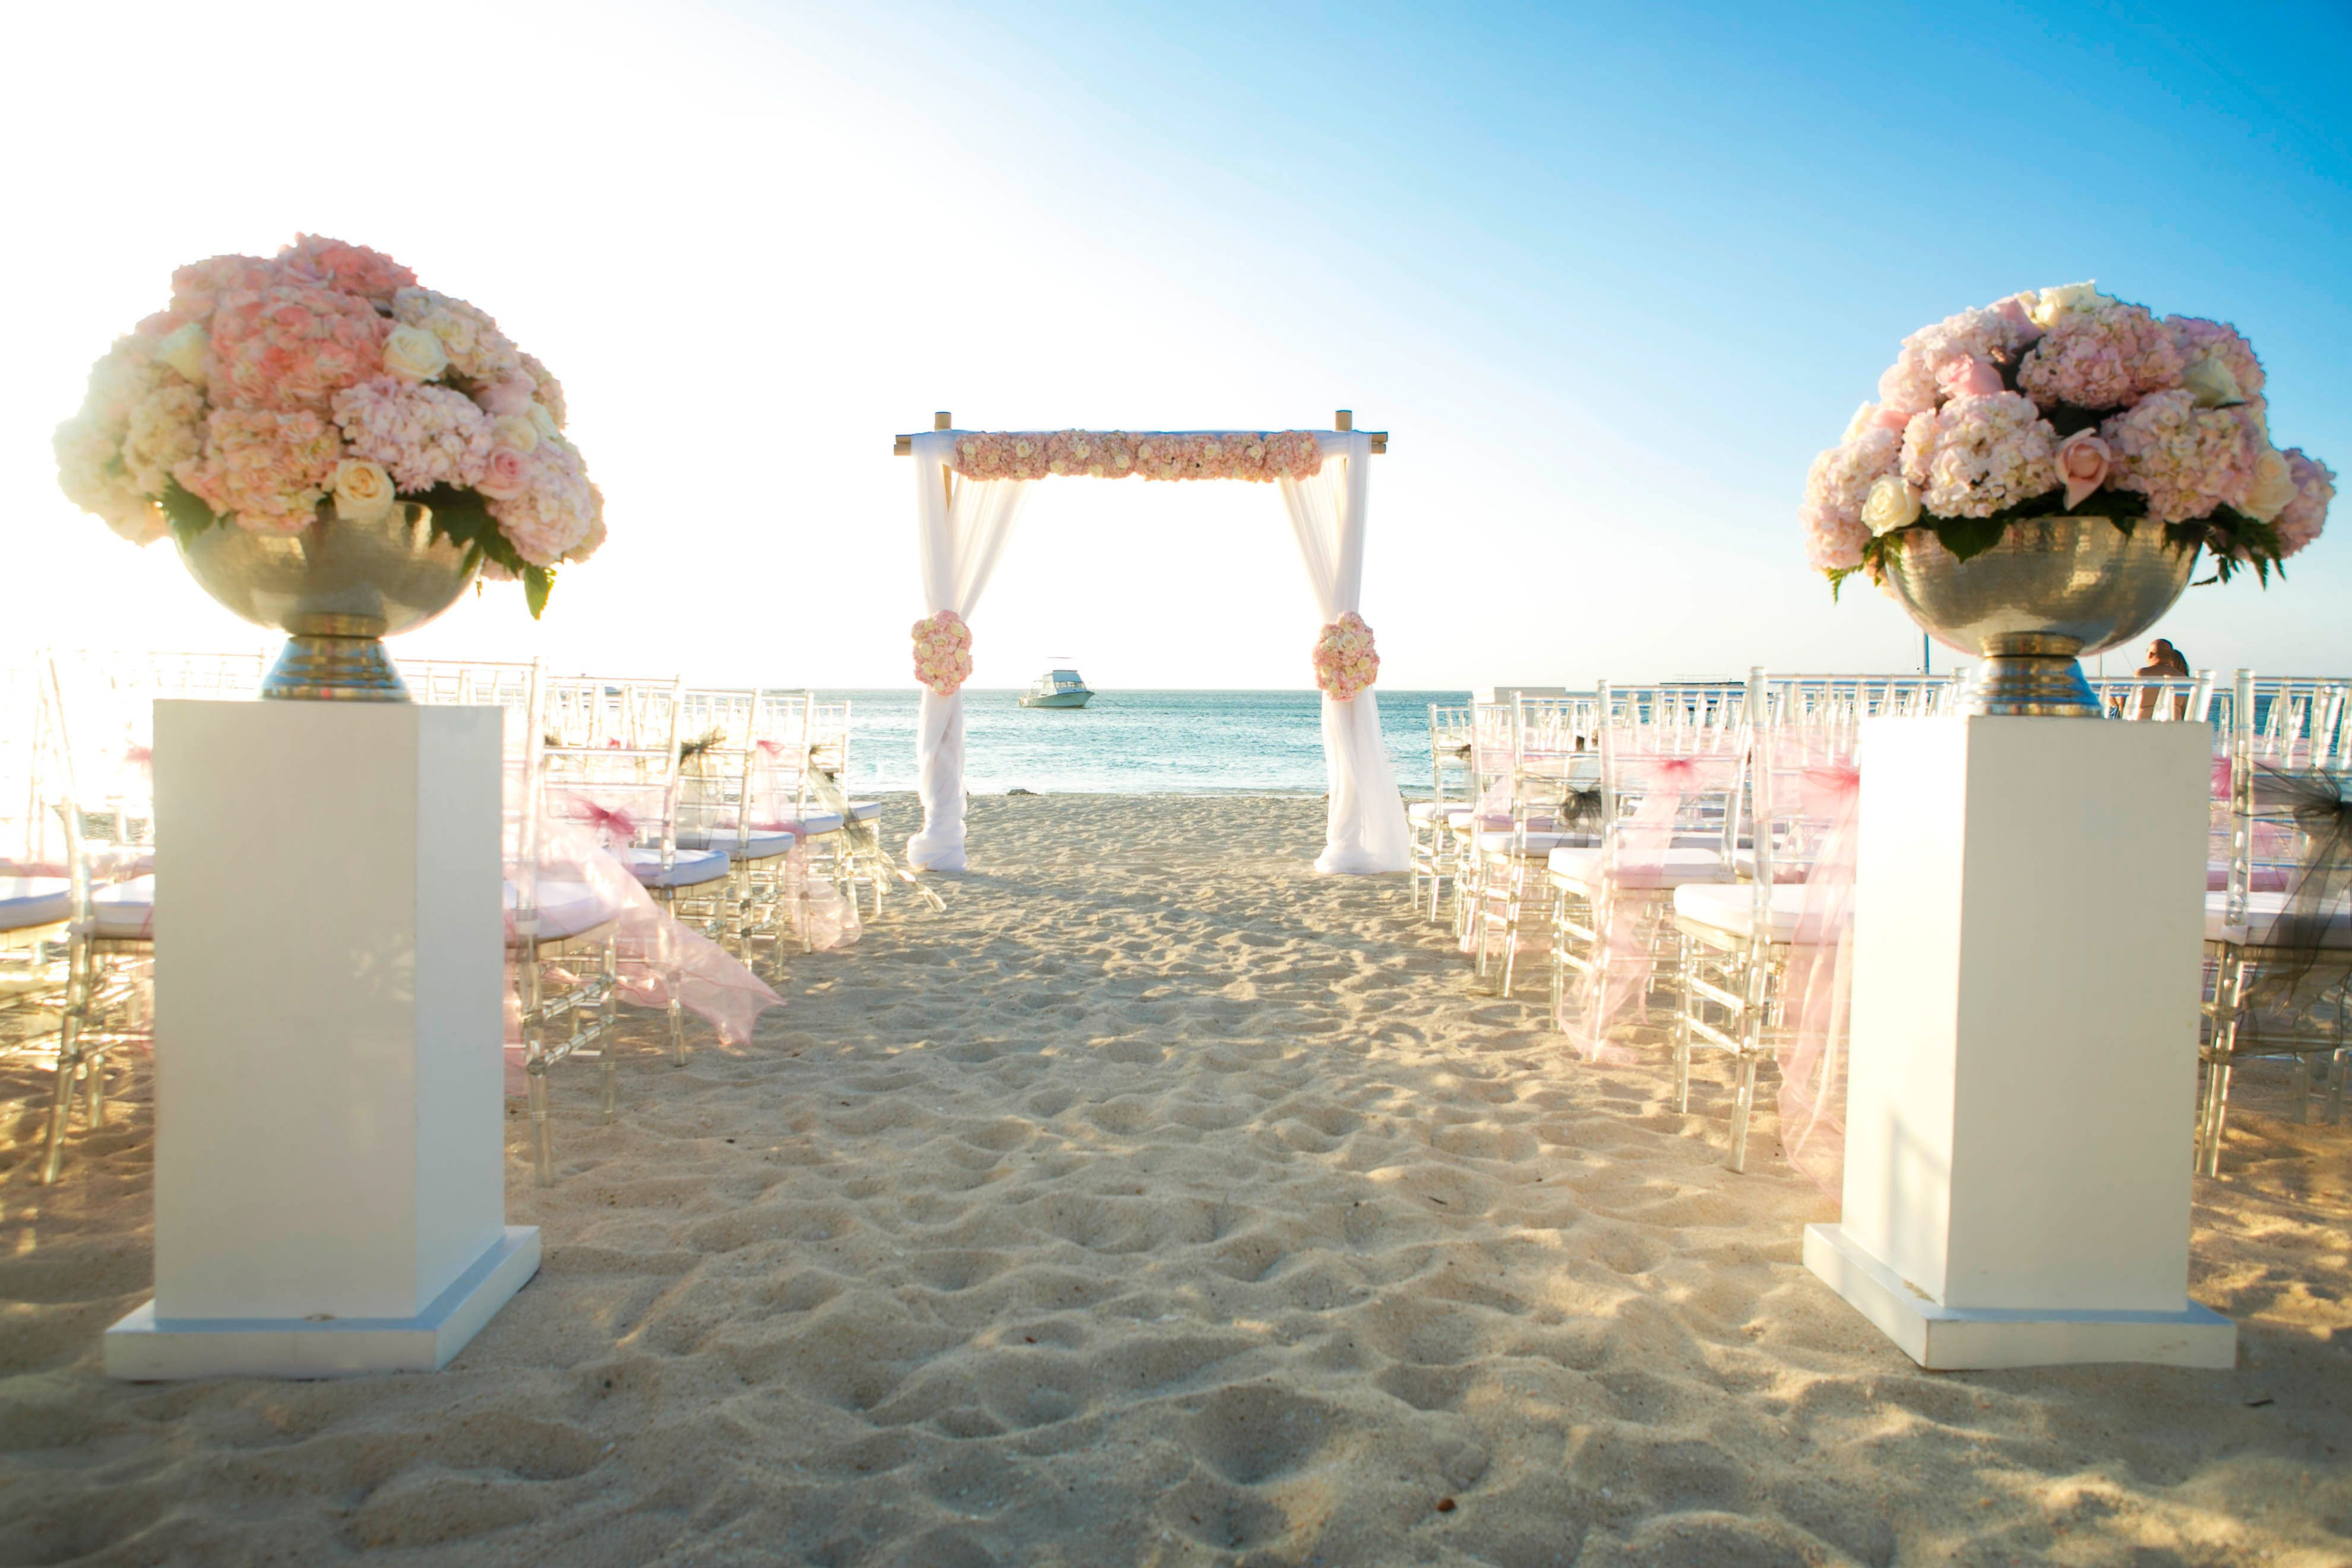 Beach Wedding Setup At Riu Palace Aruba Copyright Winklaar Photography Www Facebook Winklaarphotography